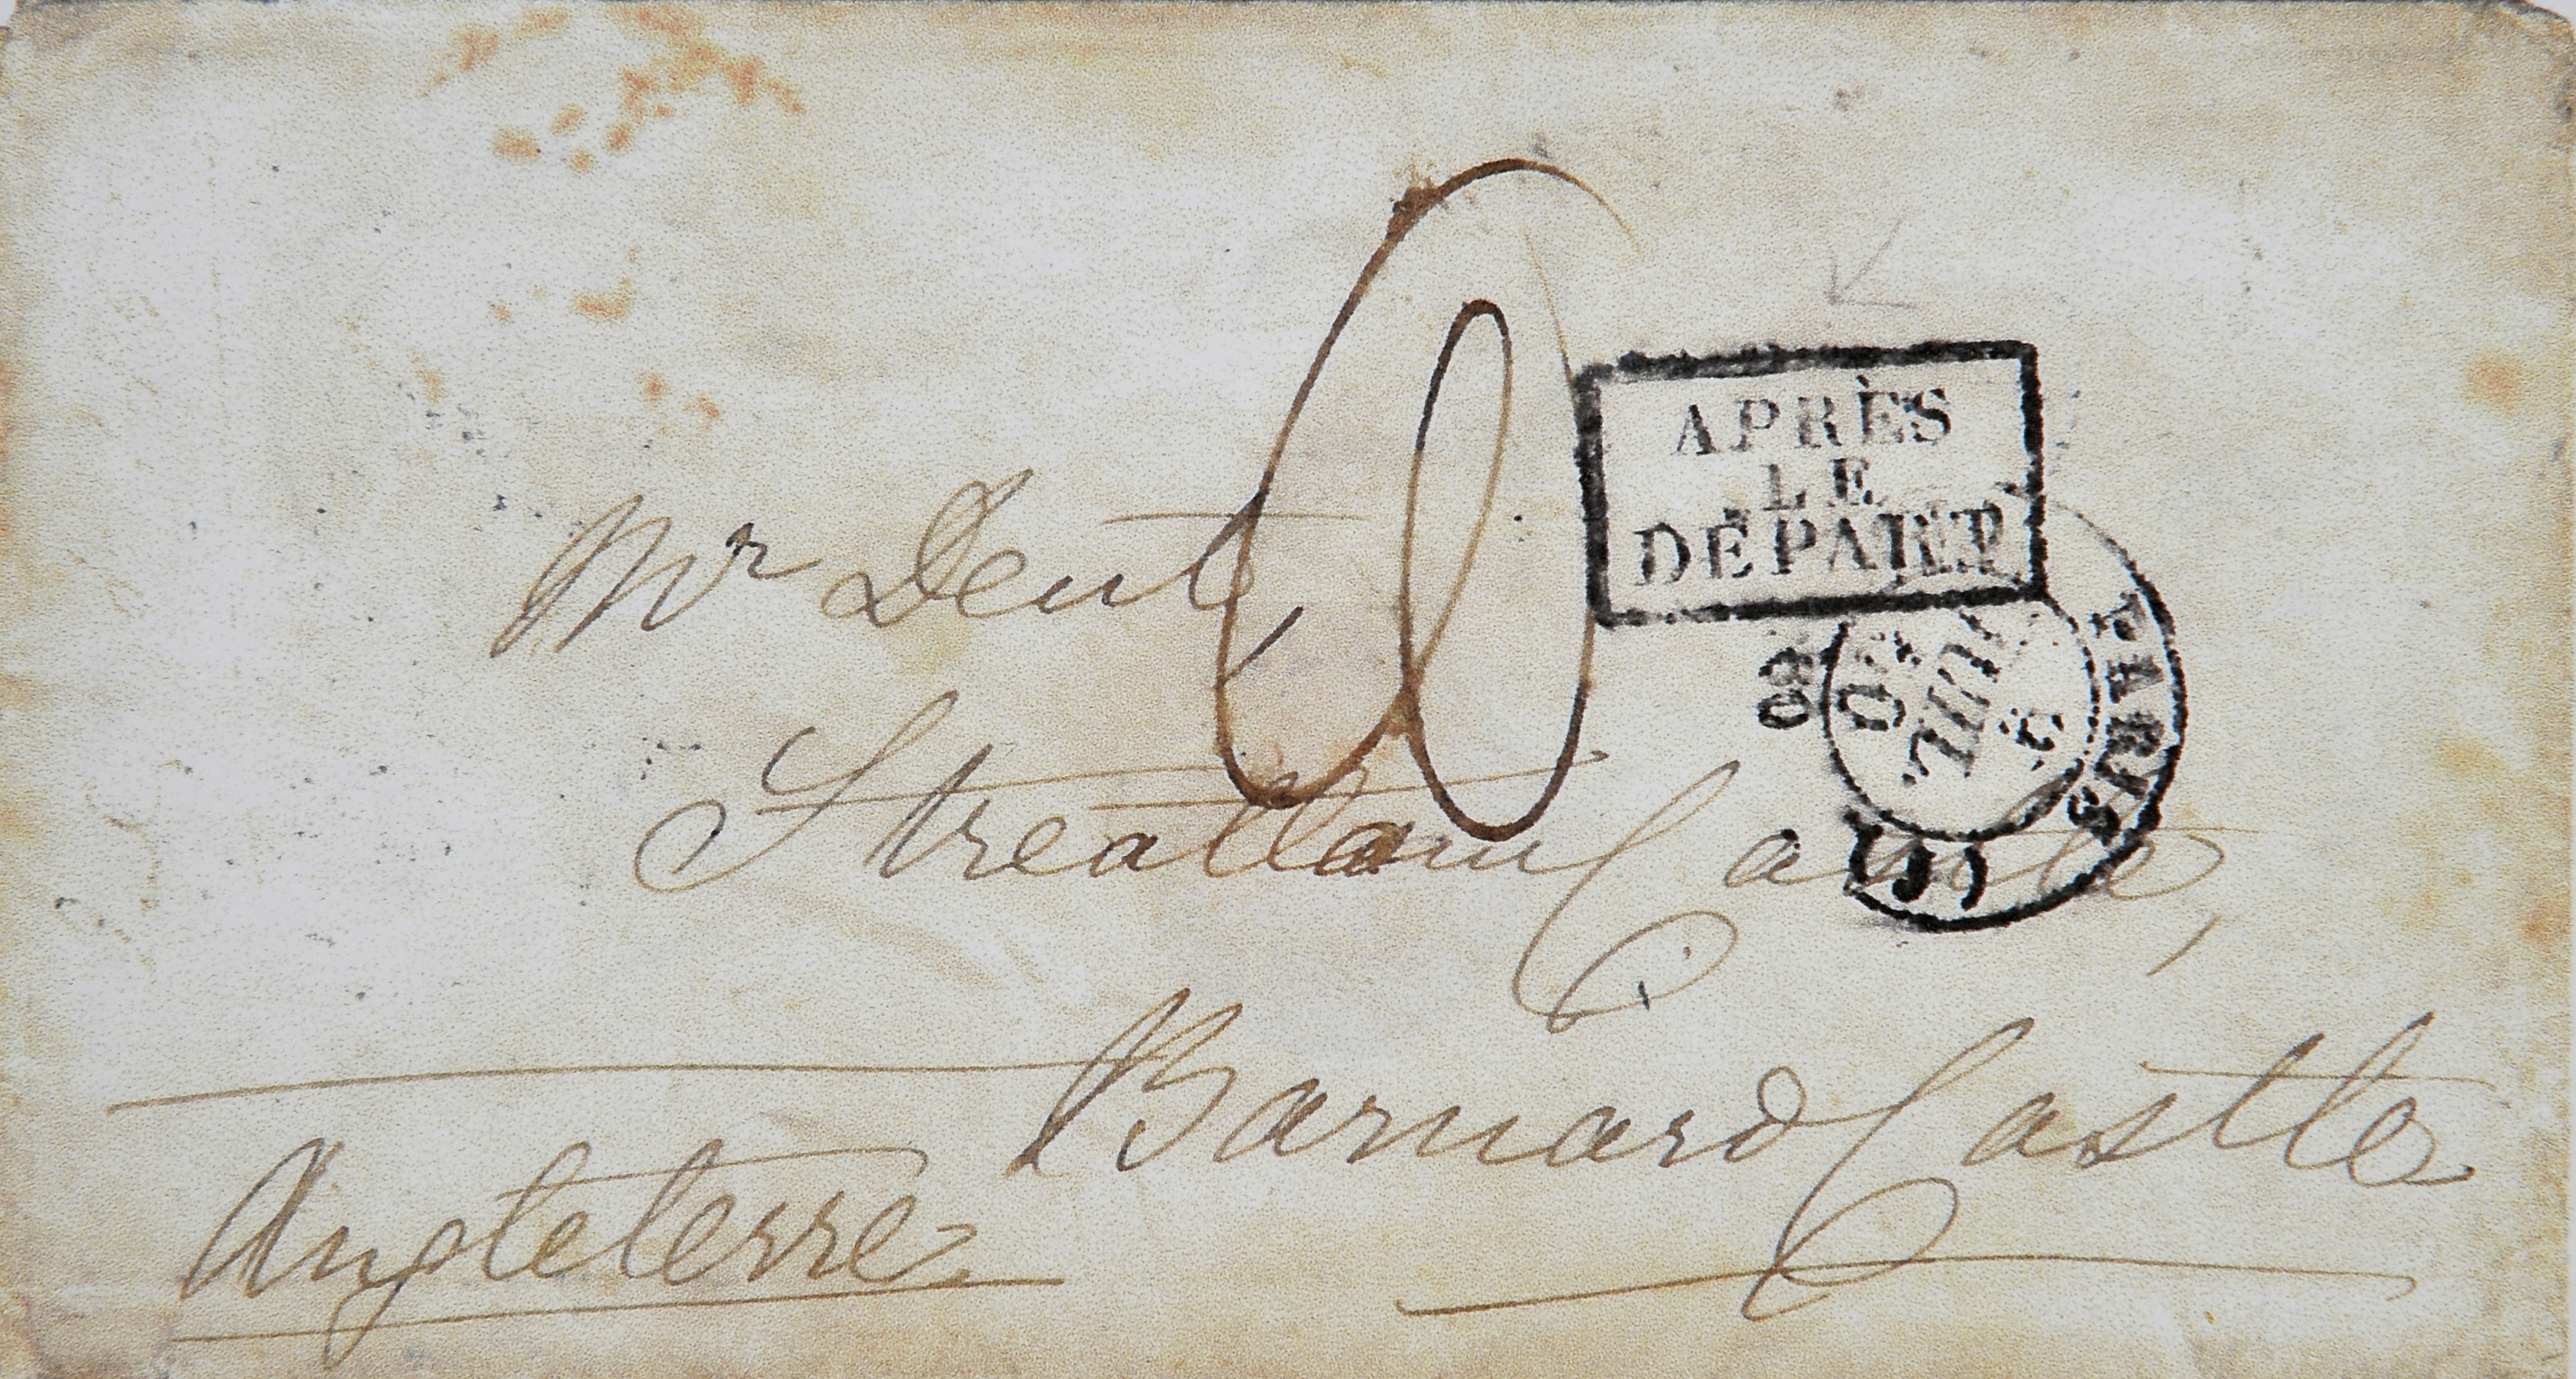 Envelope Finds Lost Letter After  Years  The Bowes MuseumS Blog